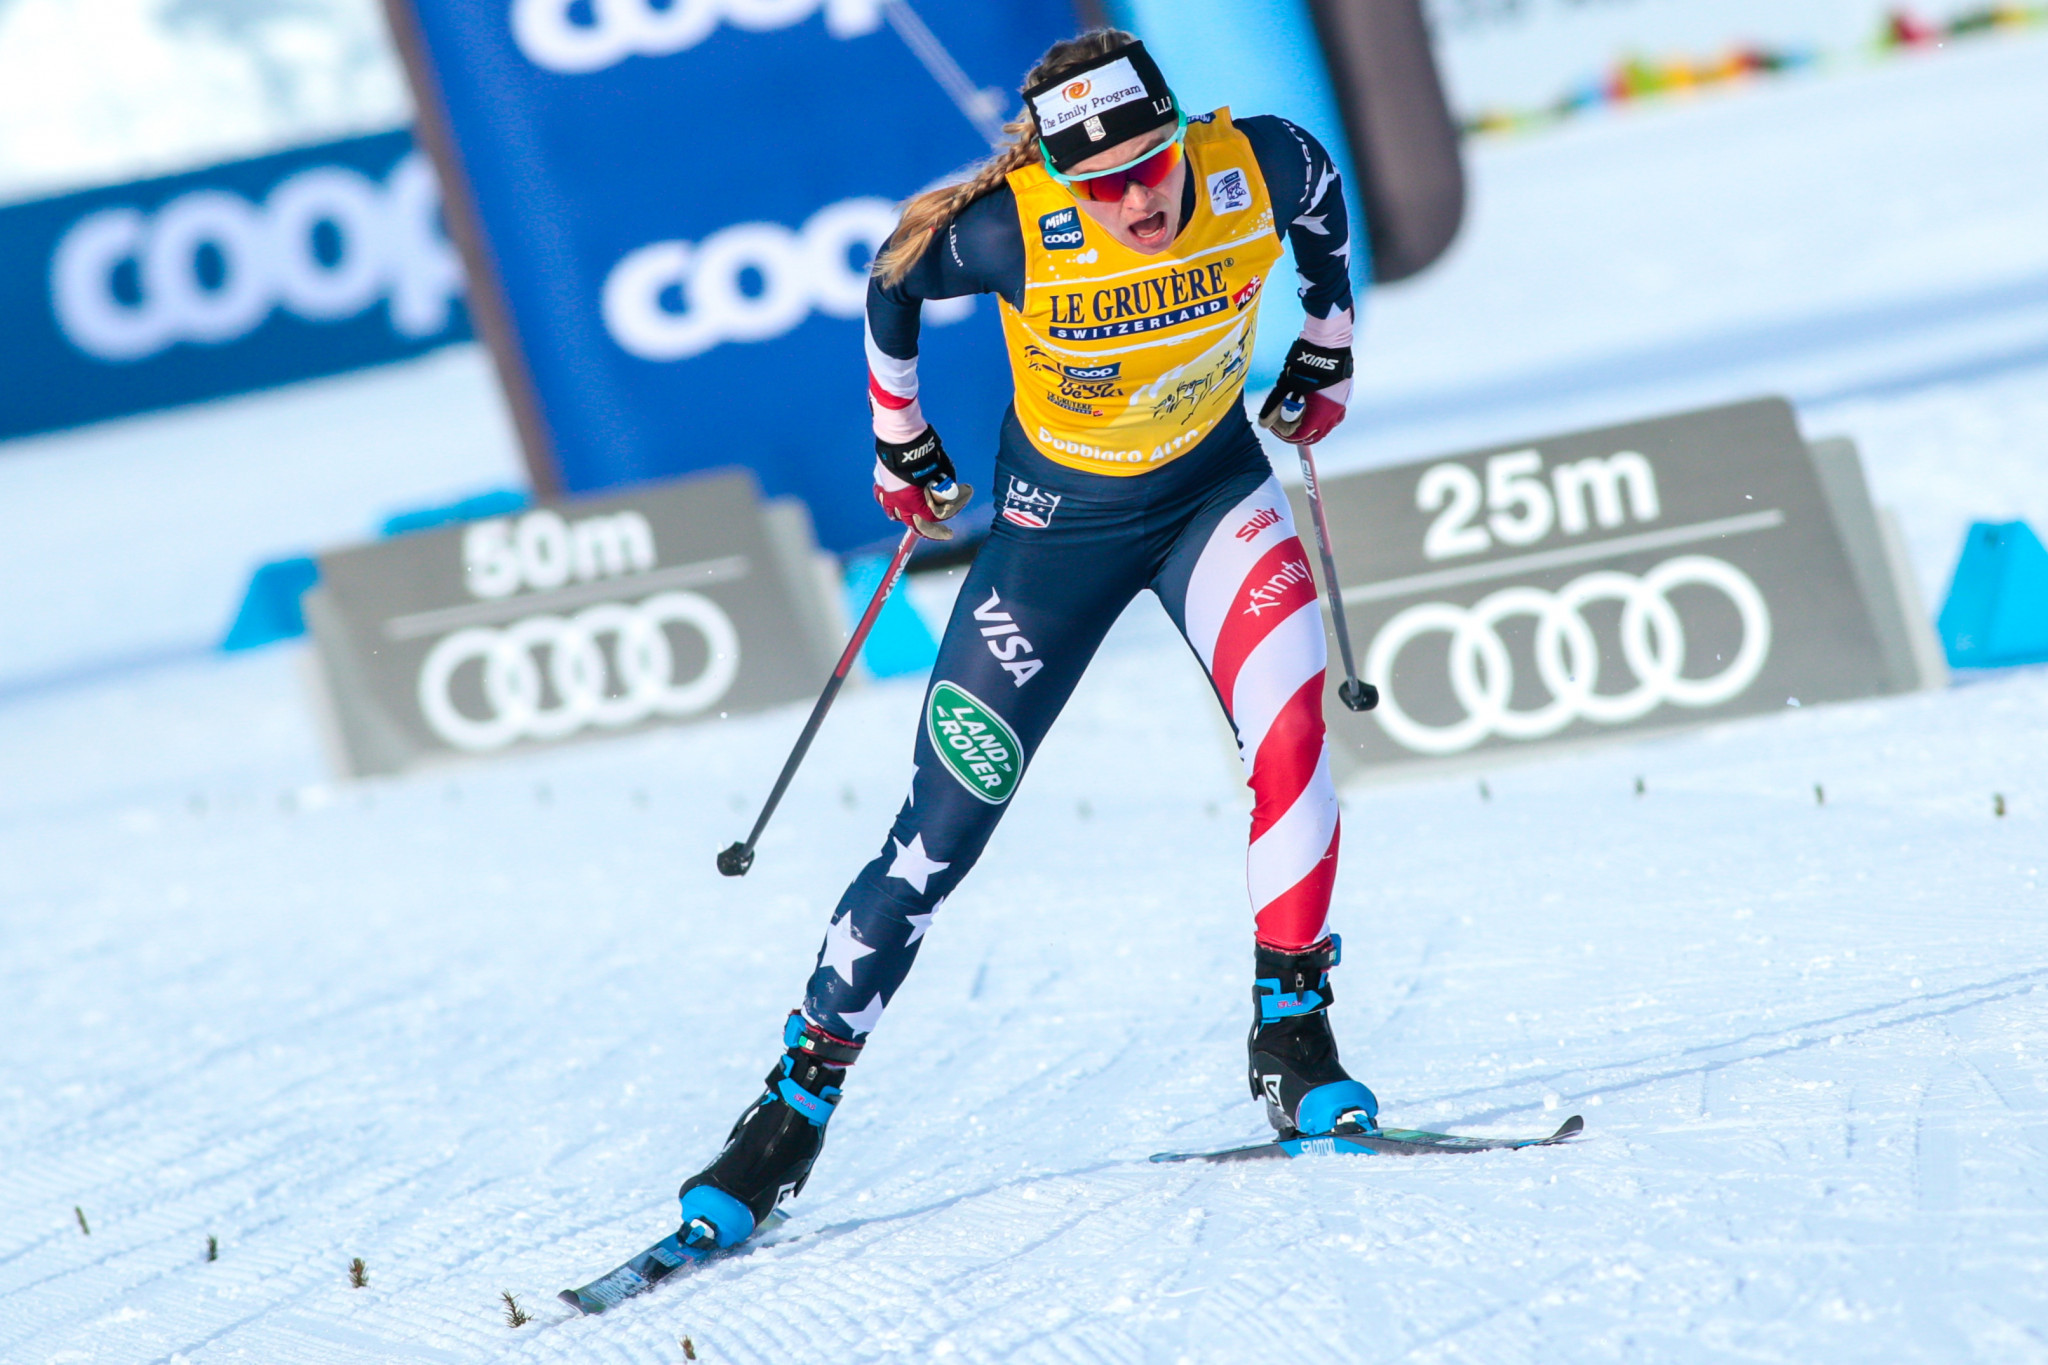 Val di Fiemme set to stage final three legs of FIS Tour de Ski